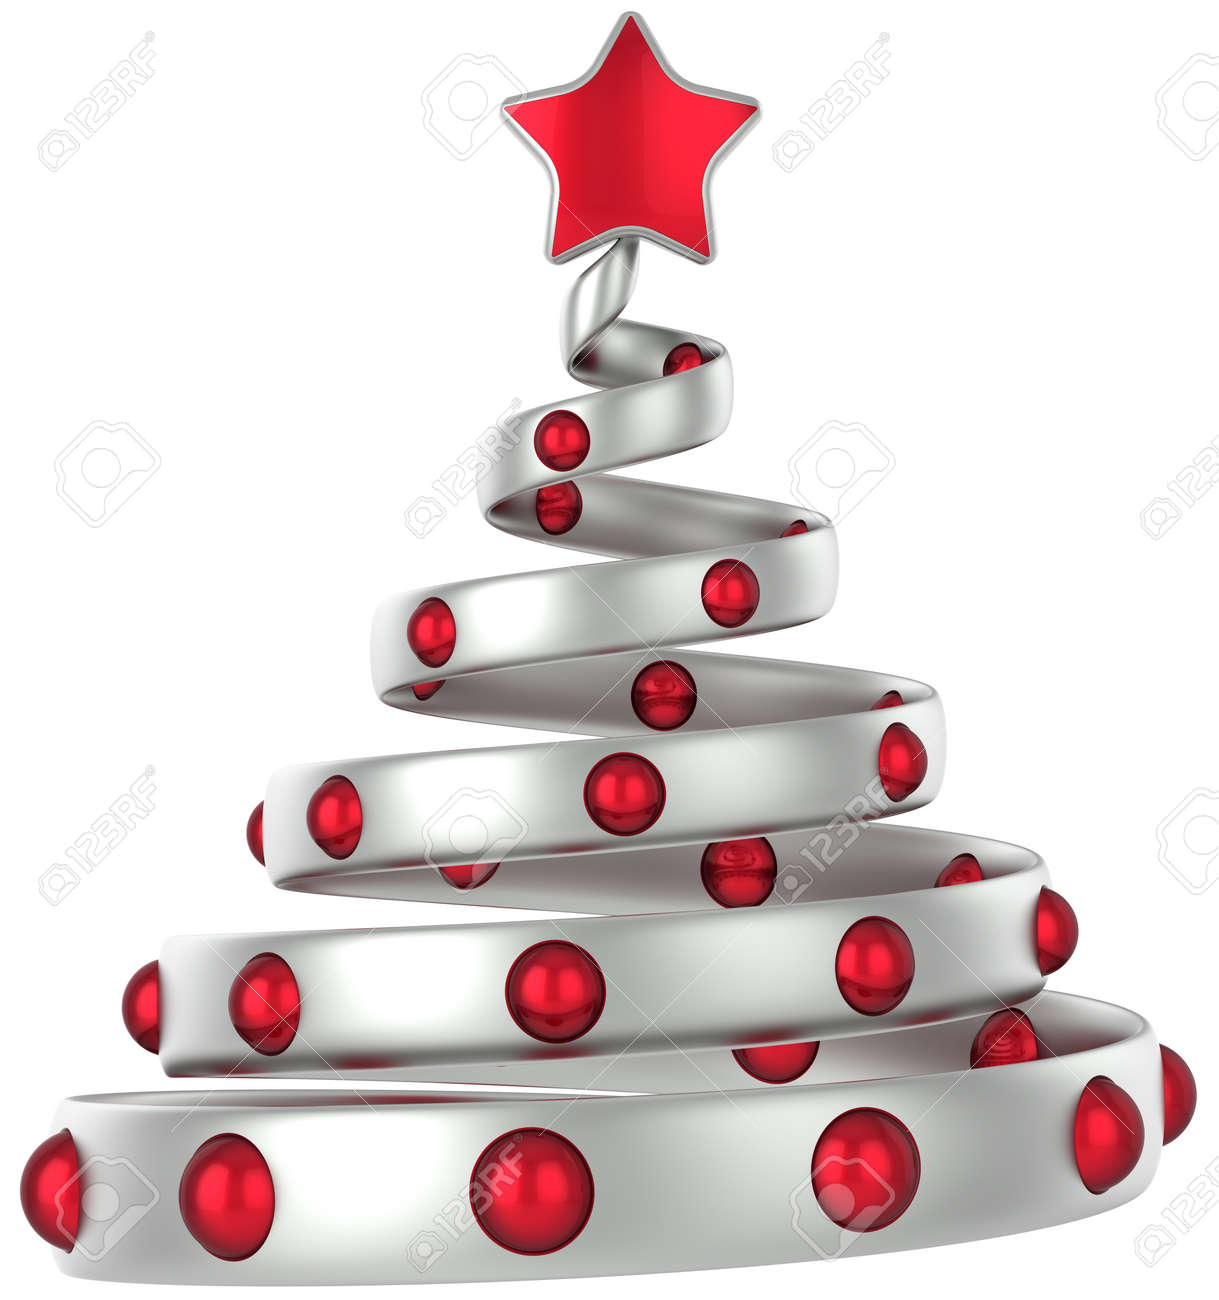 silver christmas tree decorated with red balls and shiny star 3d rendering stock photo - Silver Christmas Tree